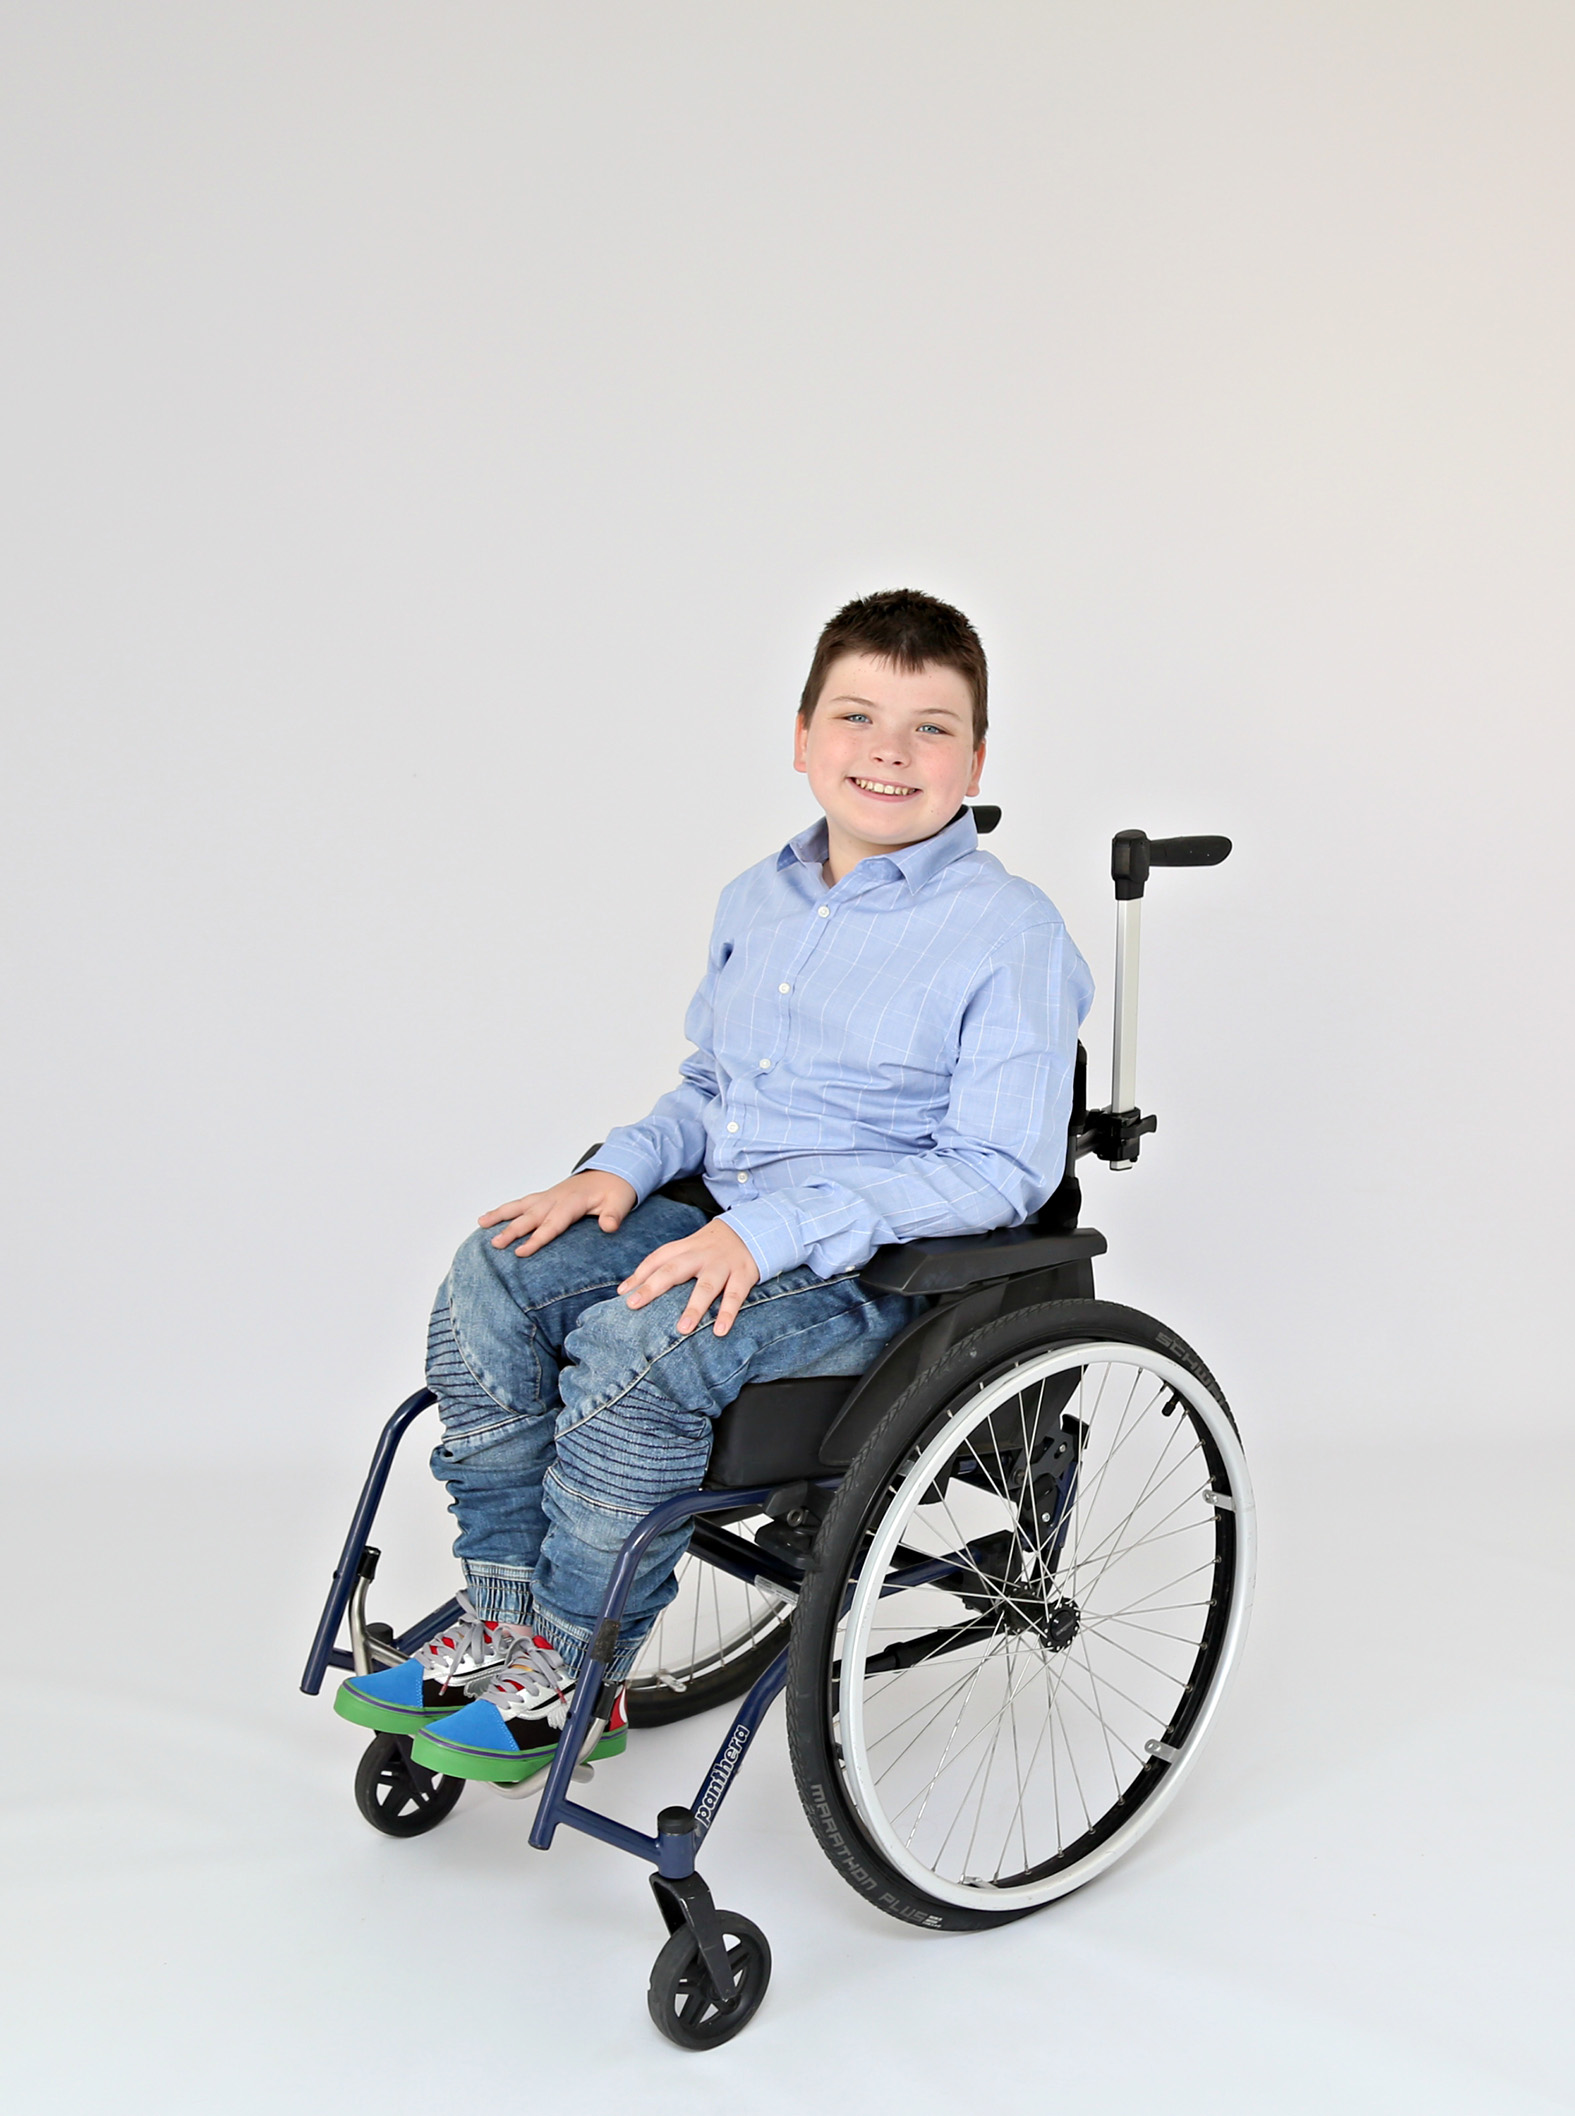 Jake, Spinal Muscular Atrophy, Zebedee M